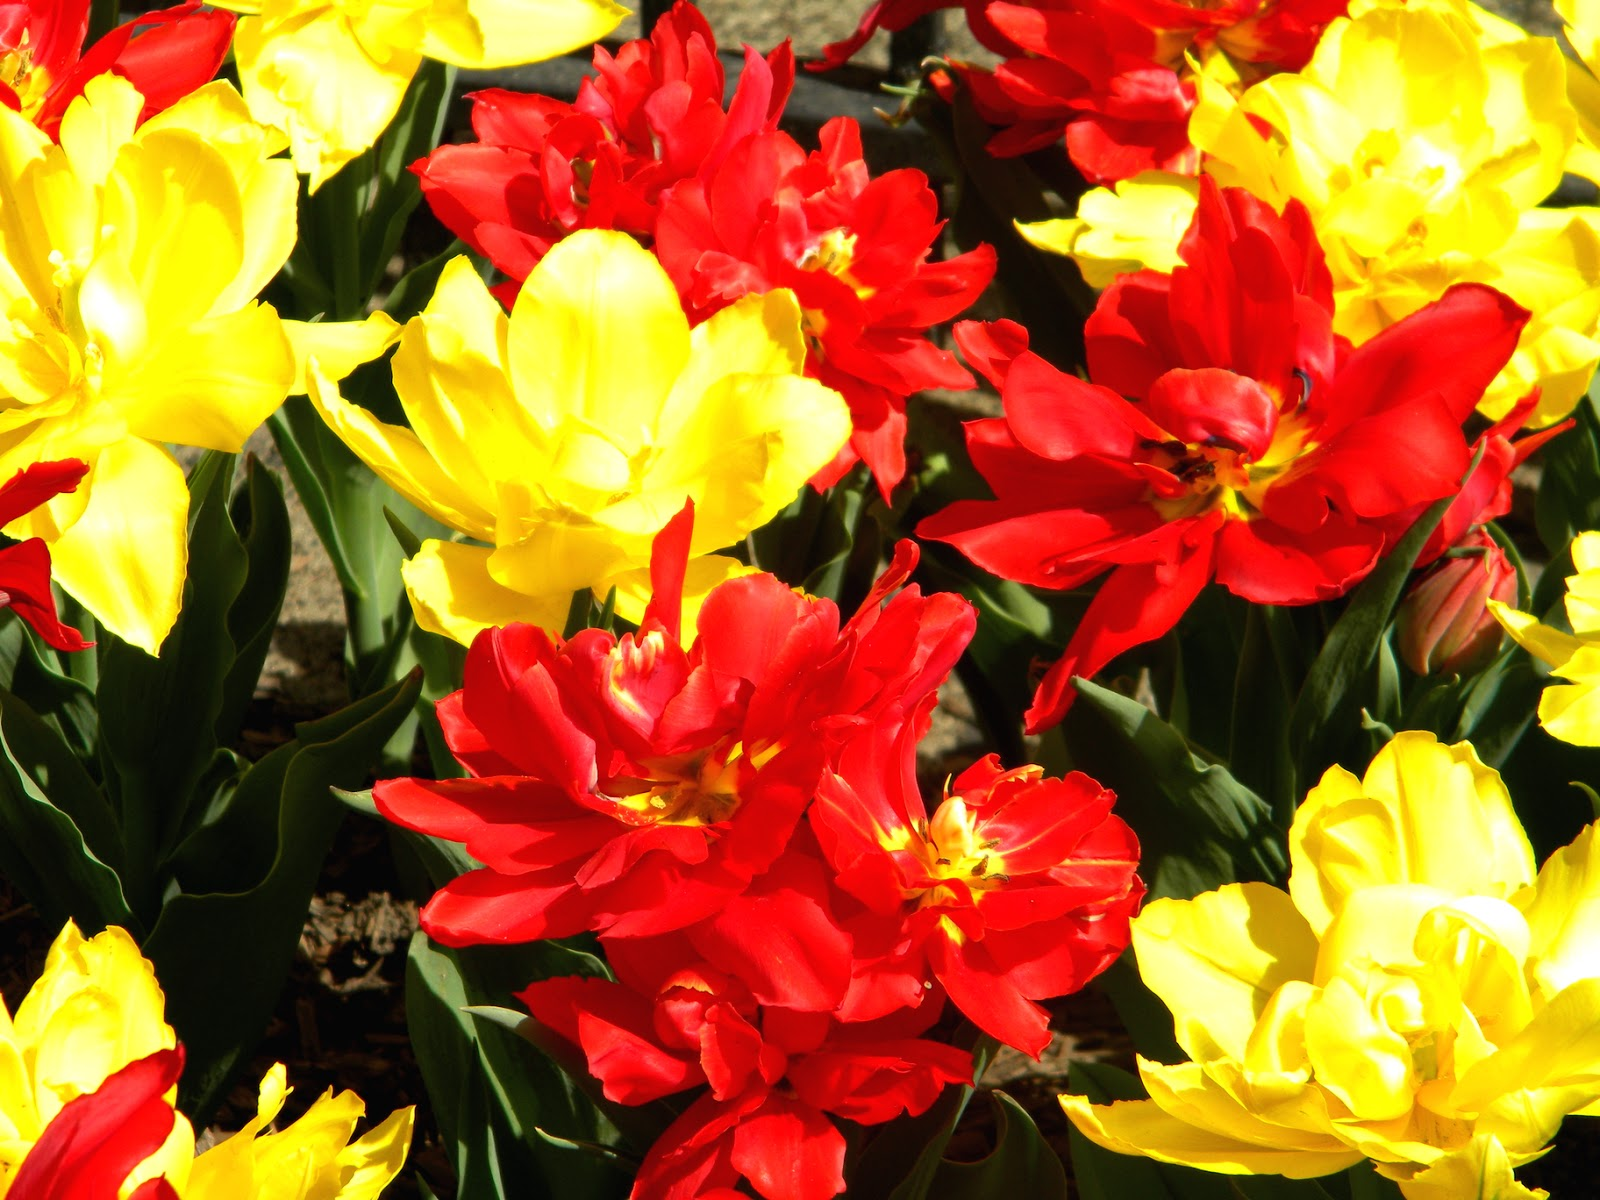 Red and Yellow Spring Flowers Chelsea, Manhattan